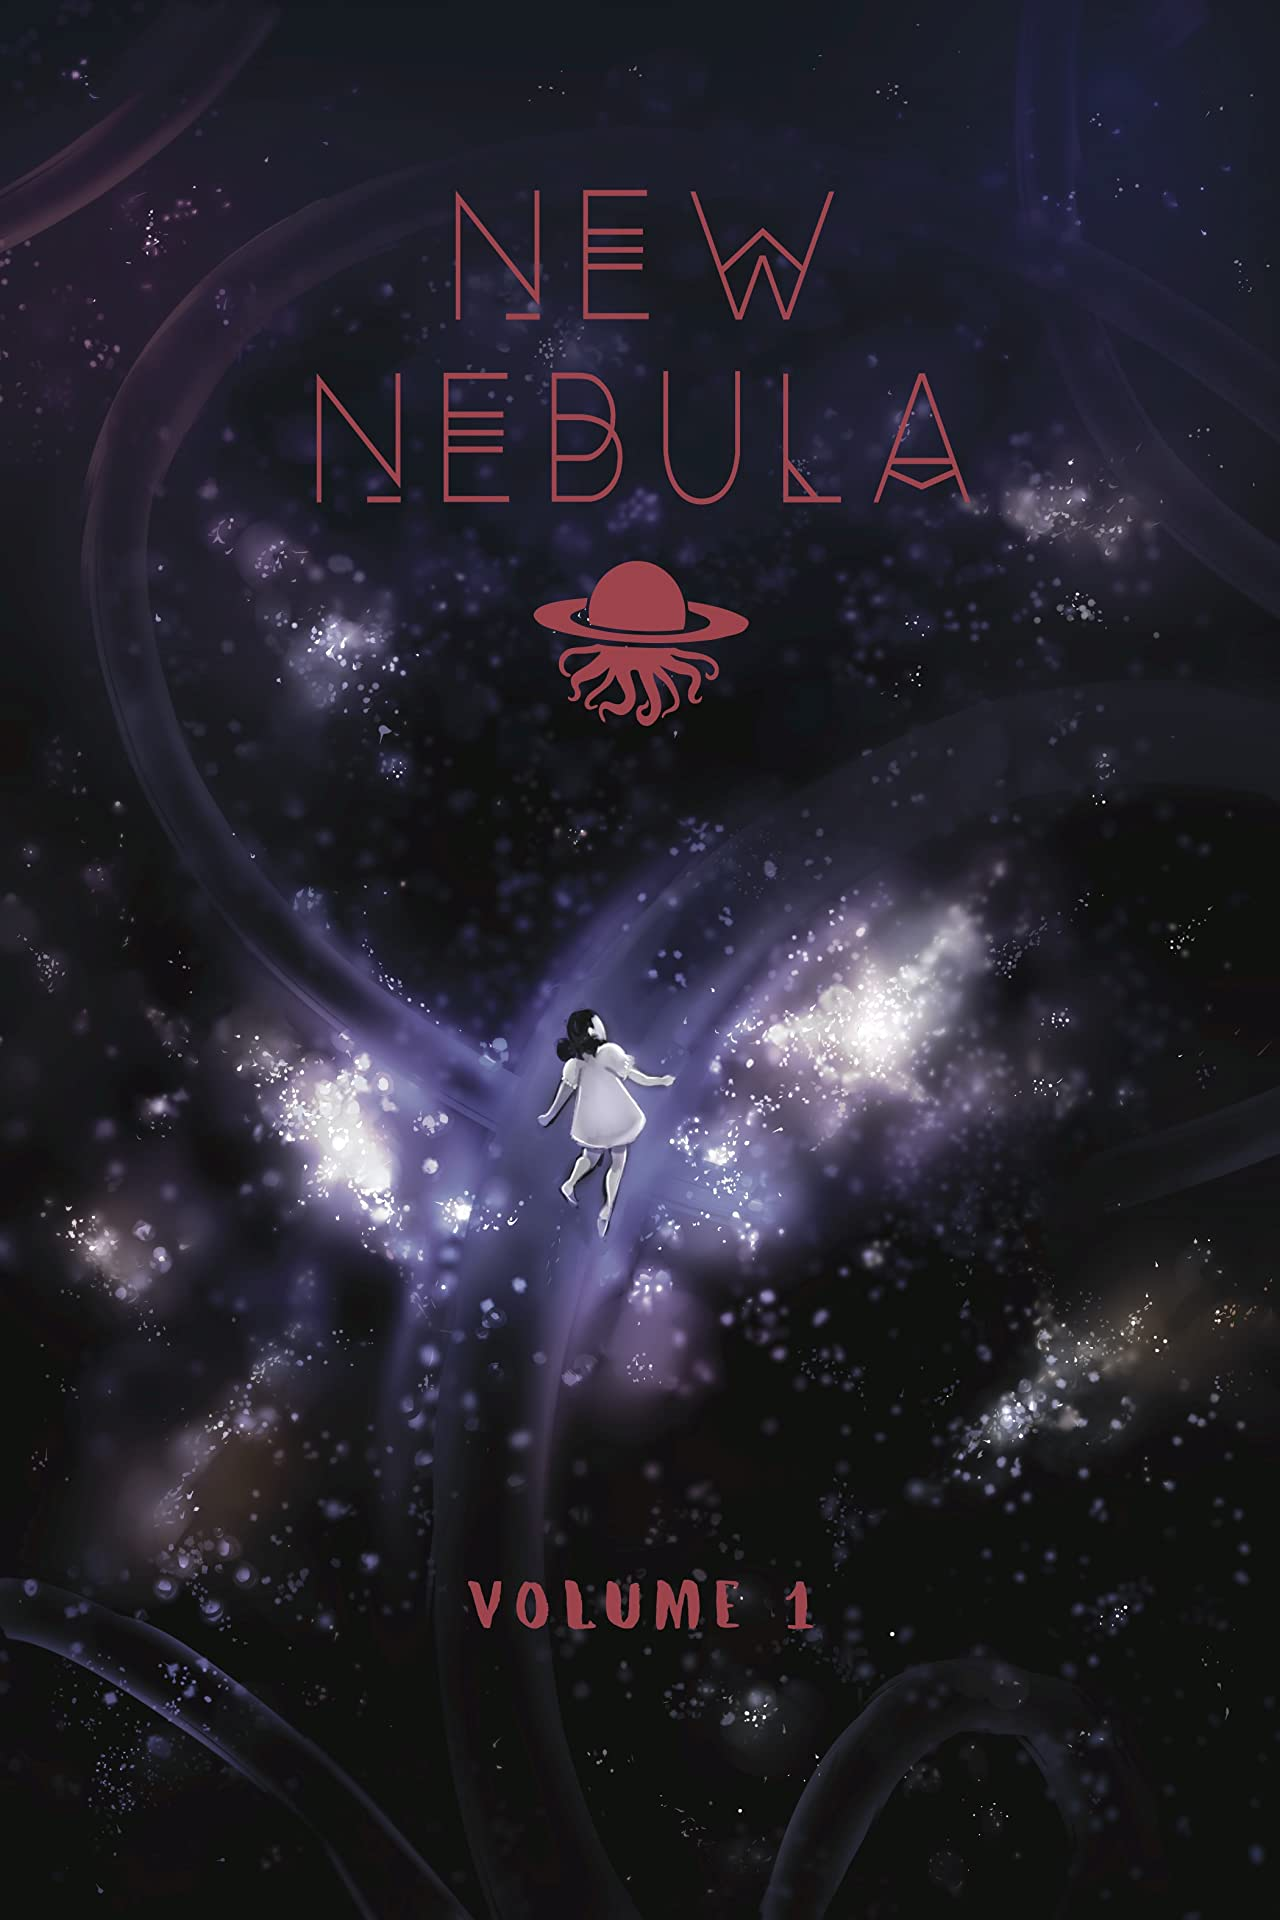 New Nebula Vol. 1